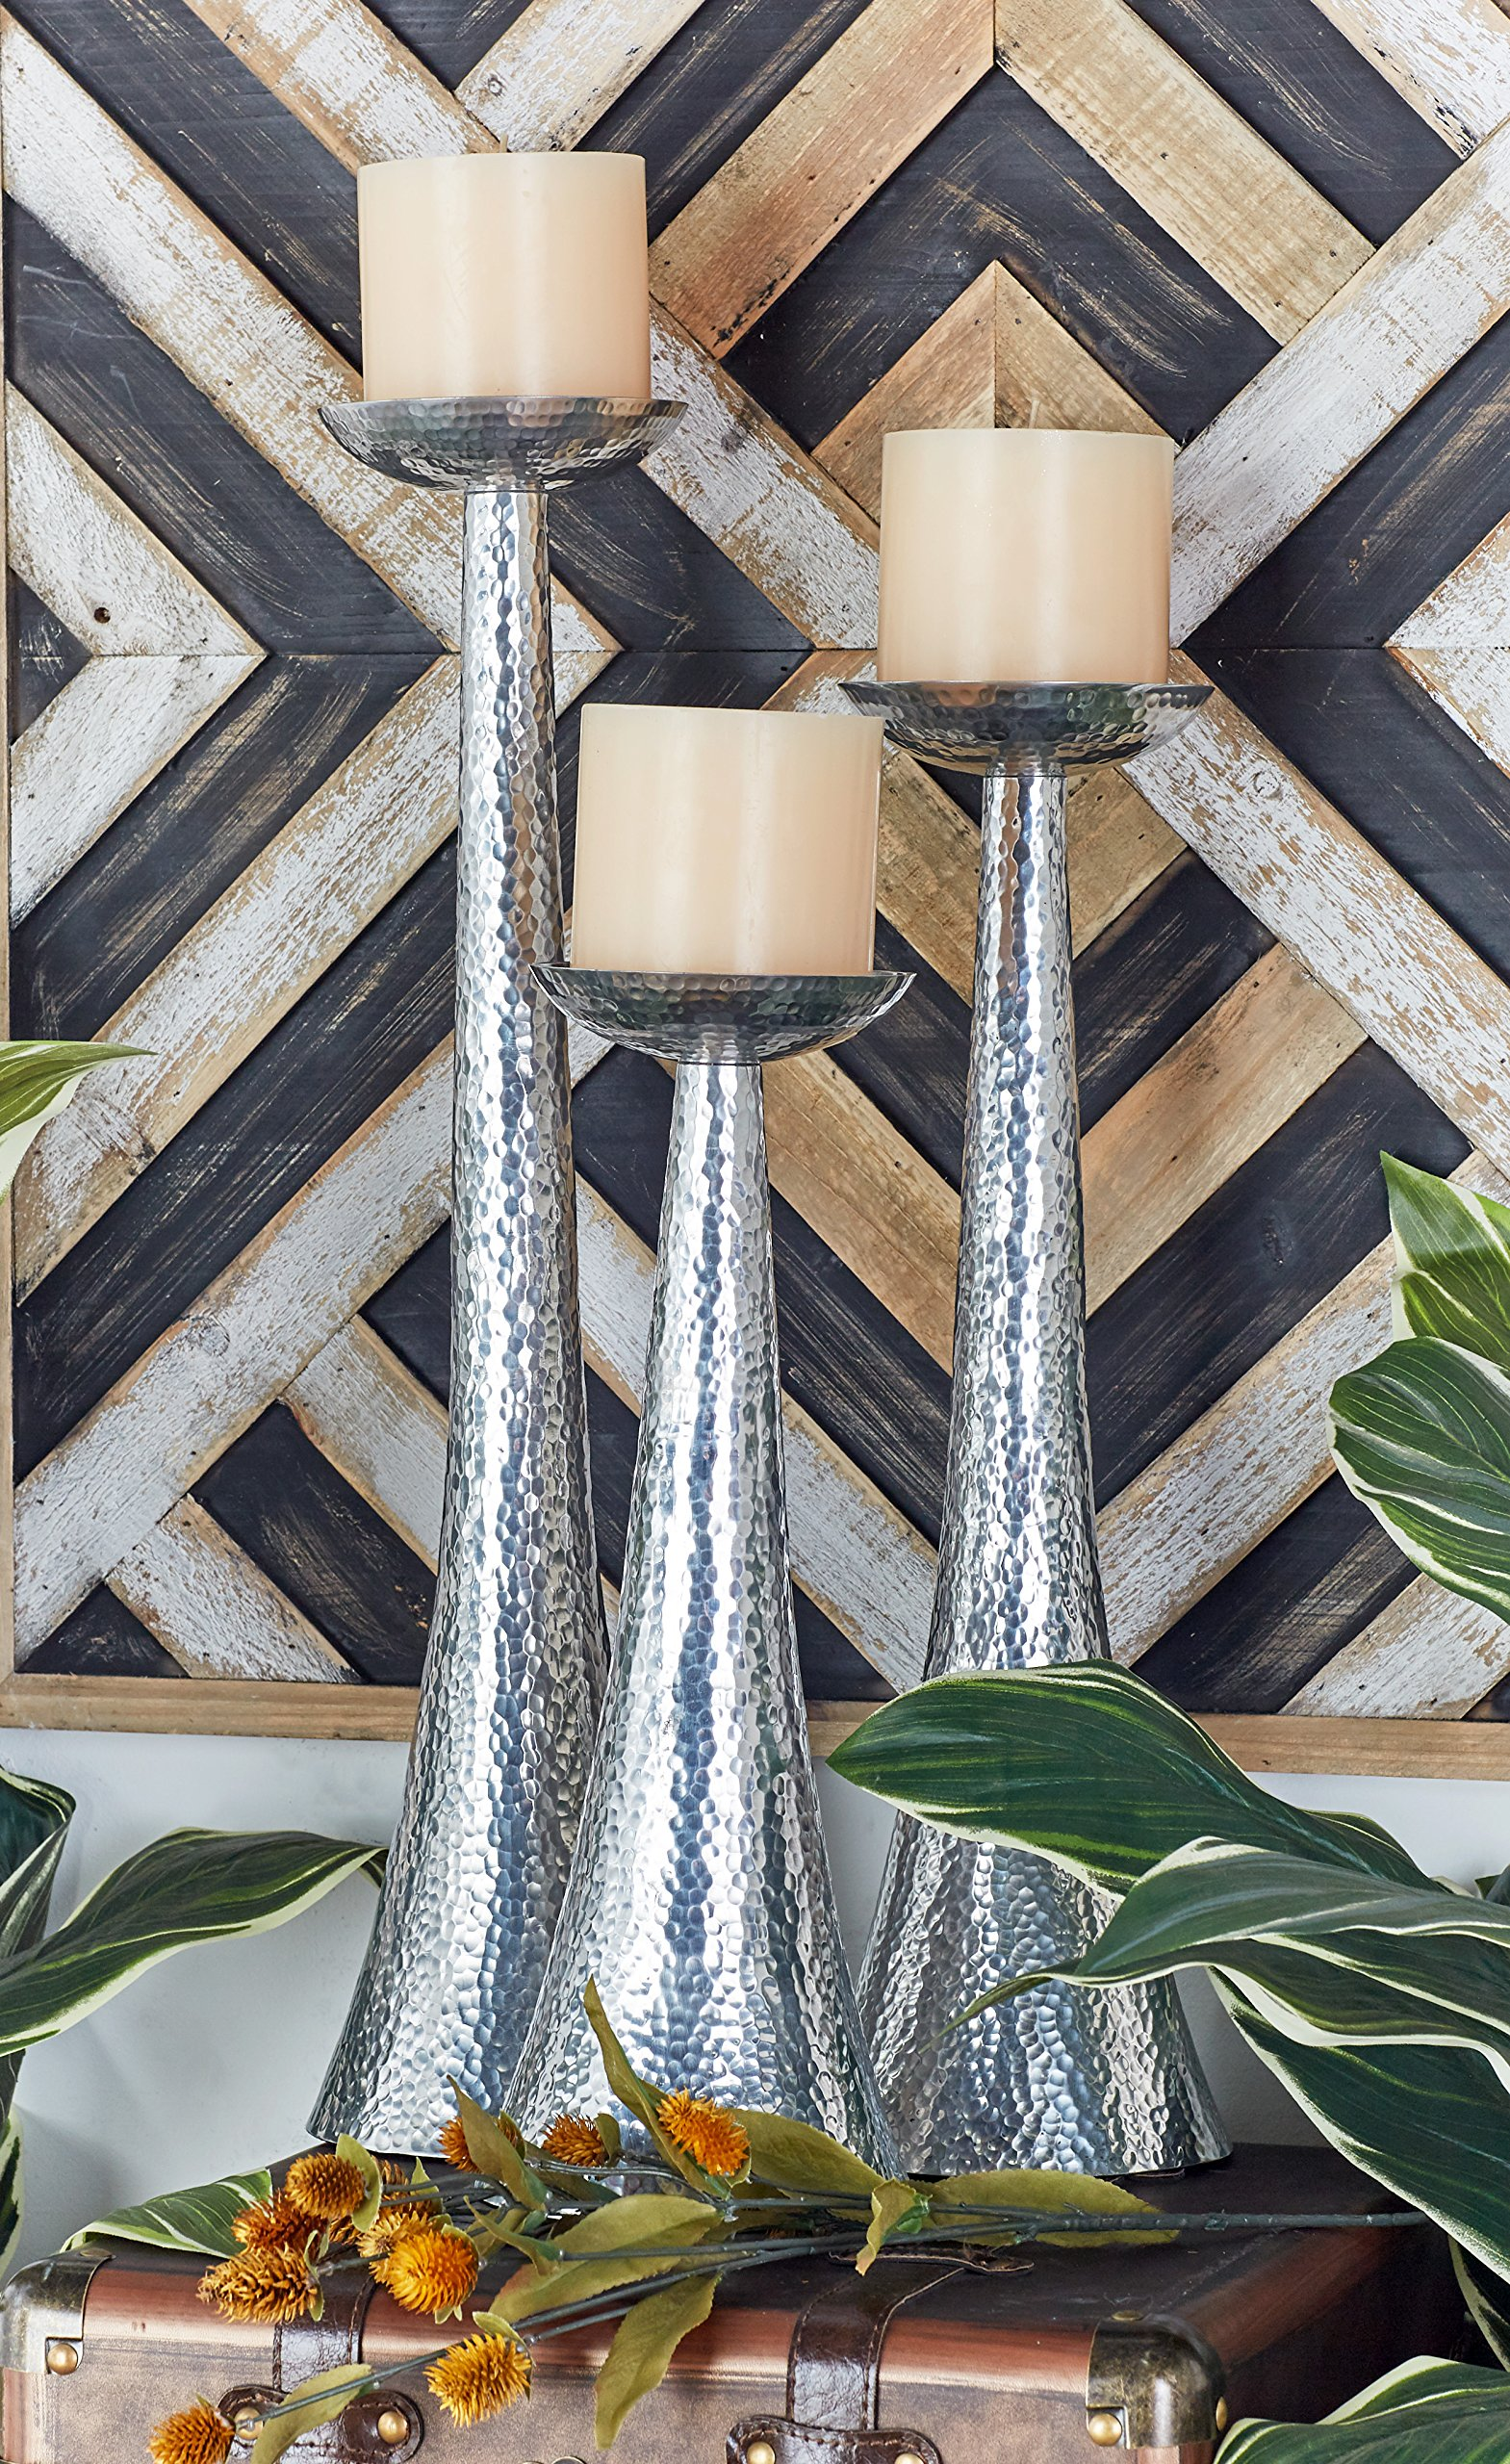 Deco 79 Aluminium Candle Holder, 23 by 20 by 16-Inch, Set of 3 by Deco 79 (Image #4)